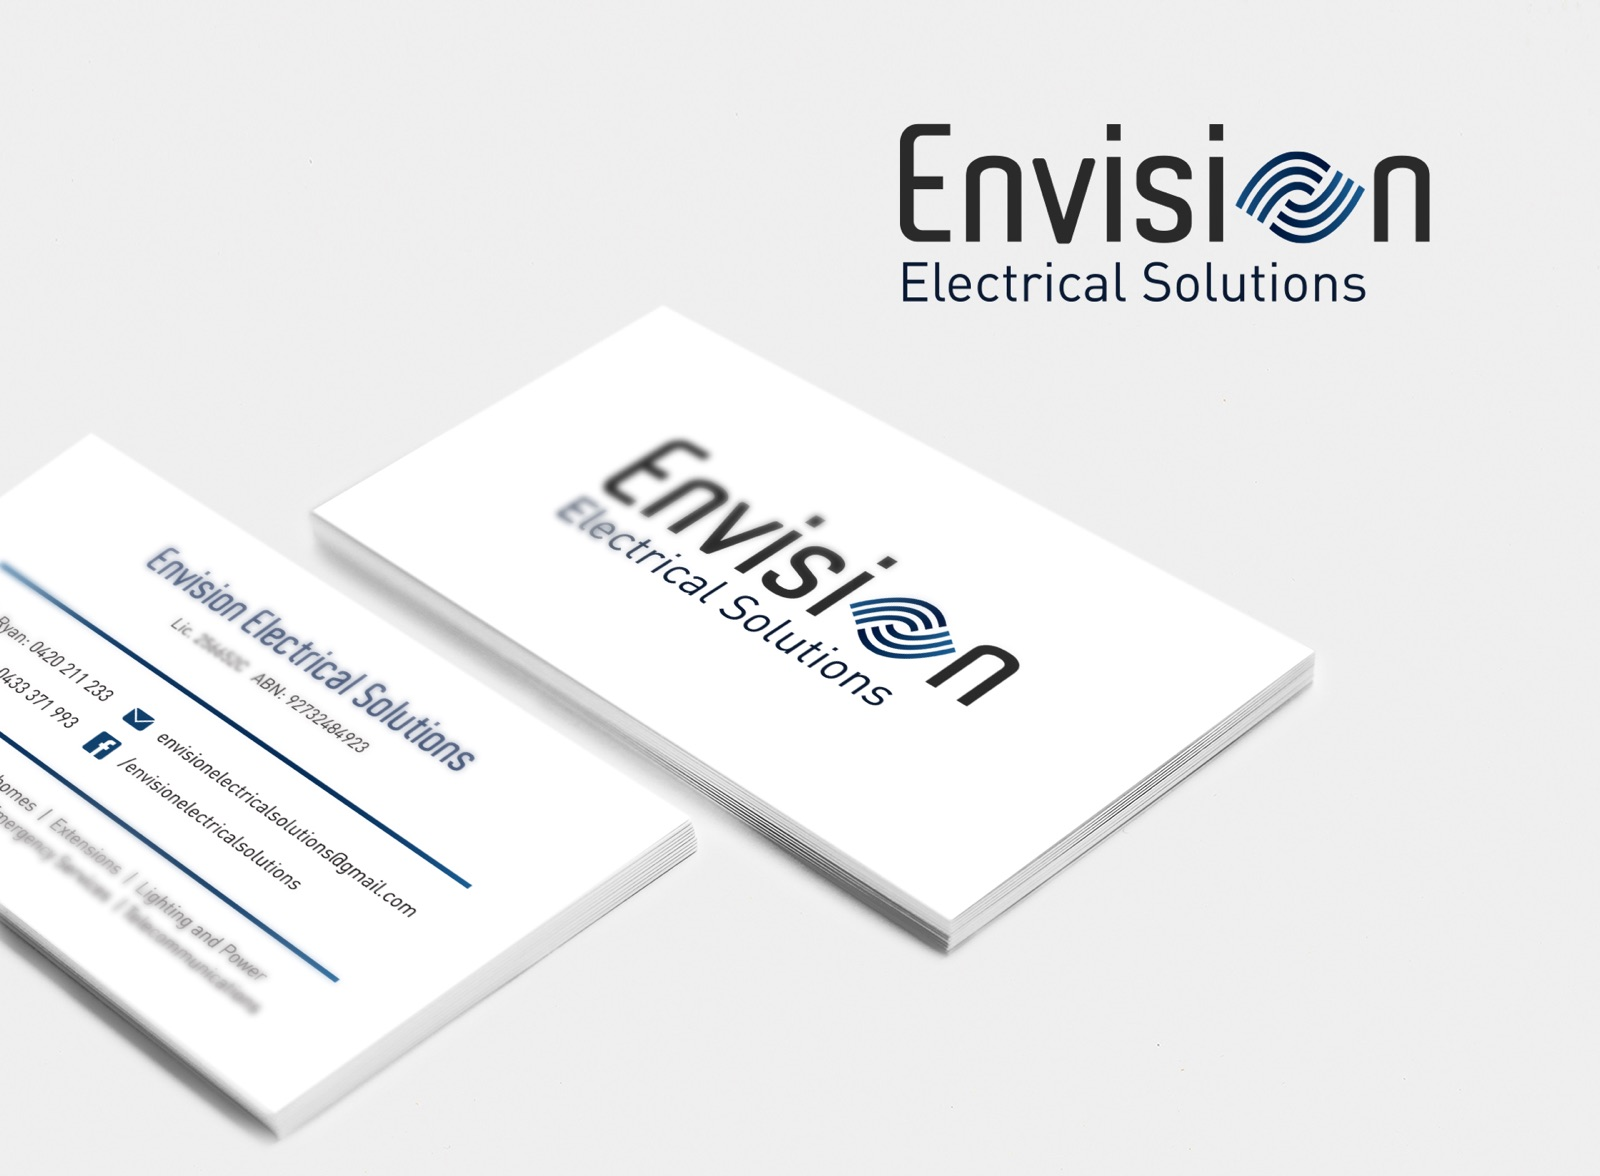 Envision Electrical Solutions